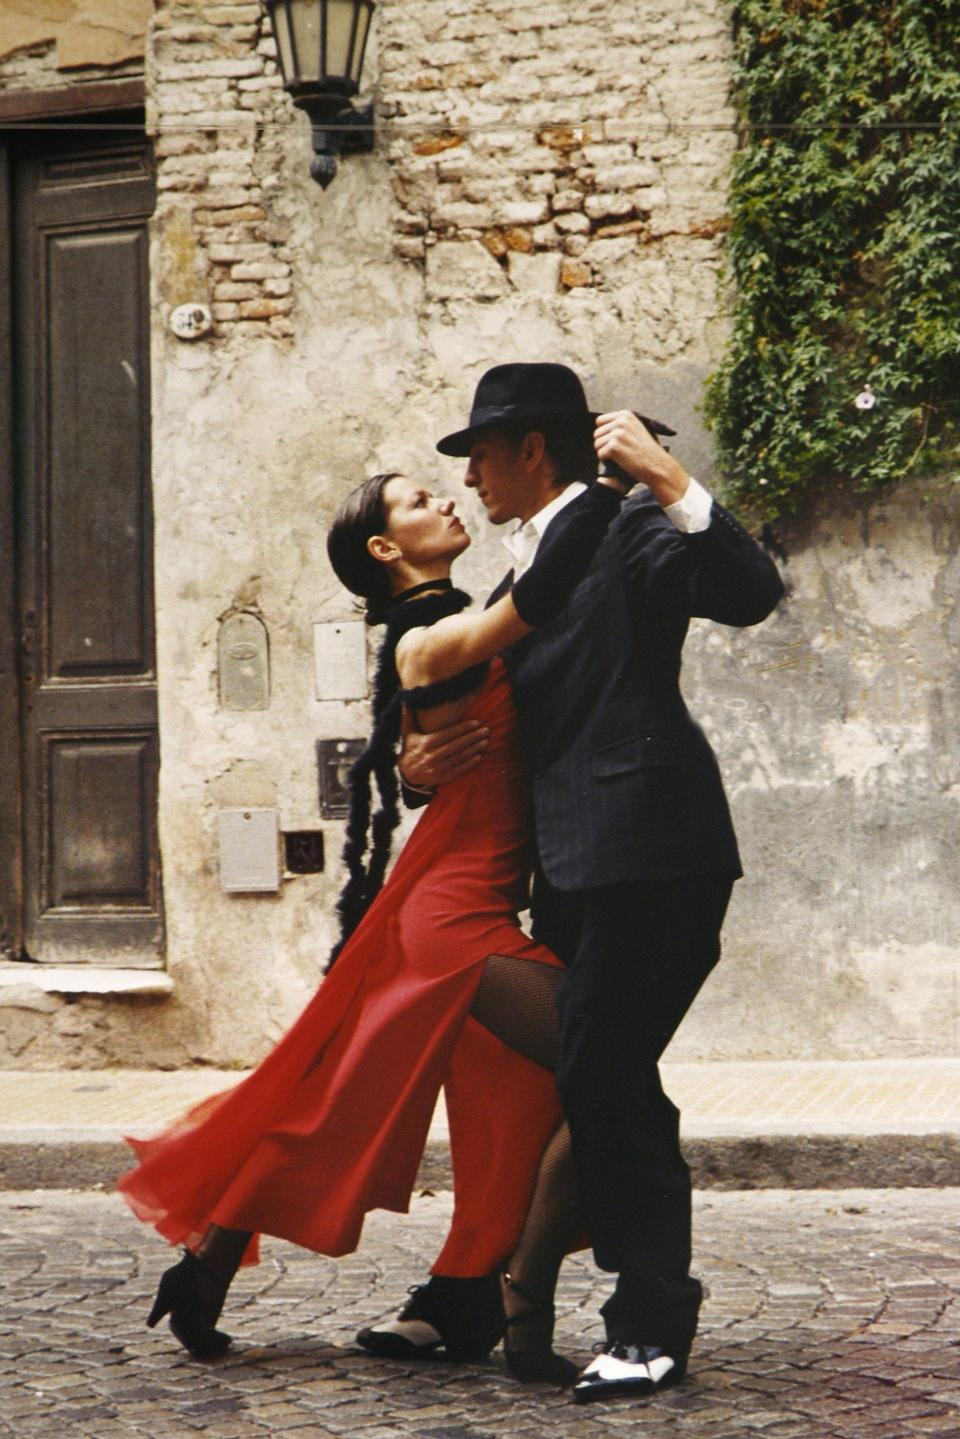 A man and a woman dancing argentinian tango